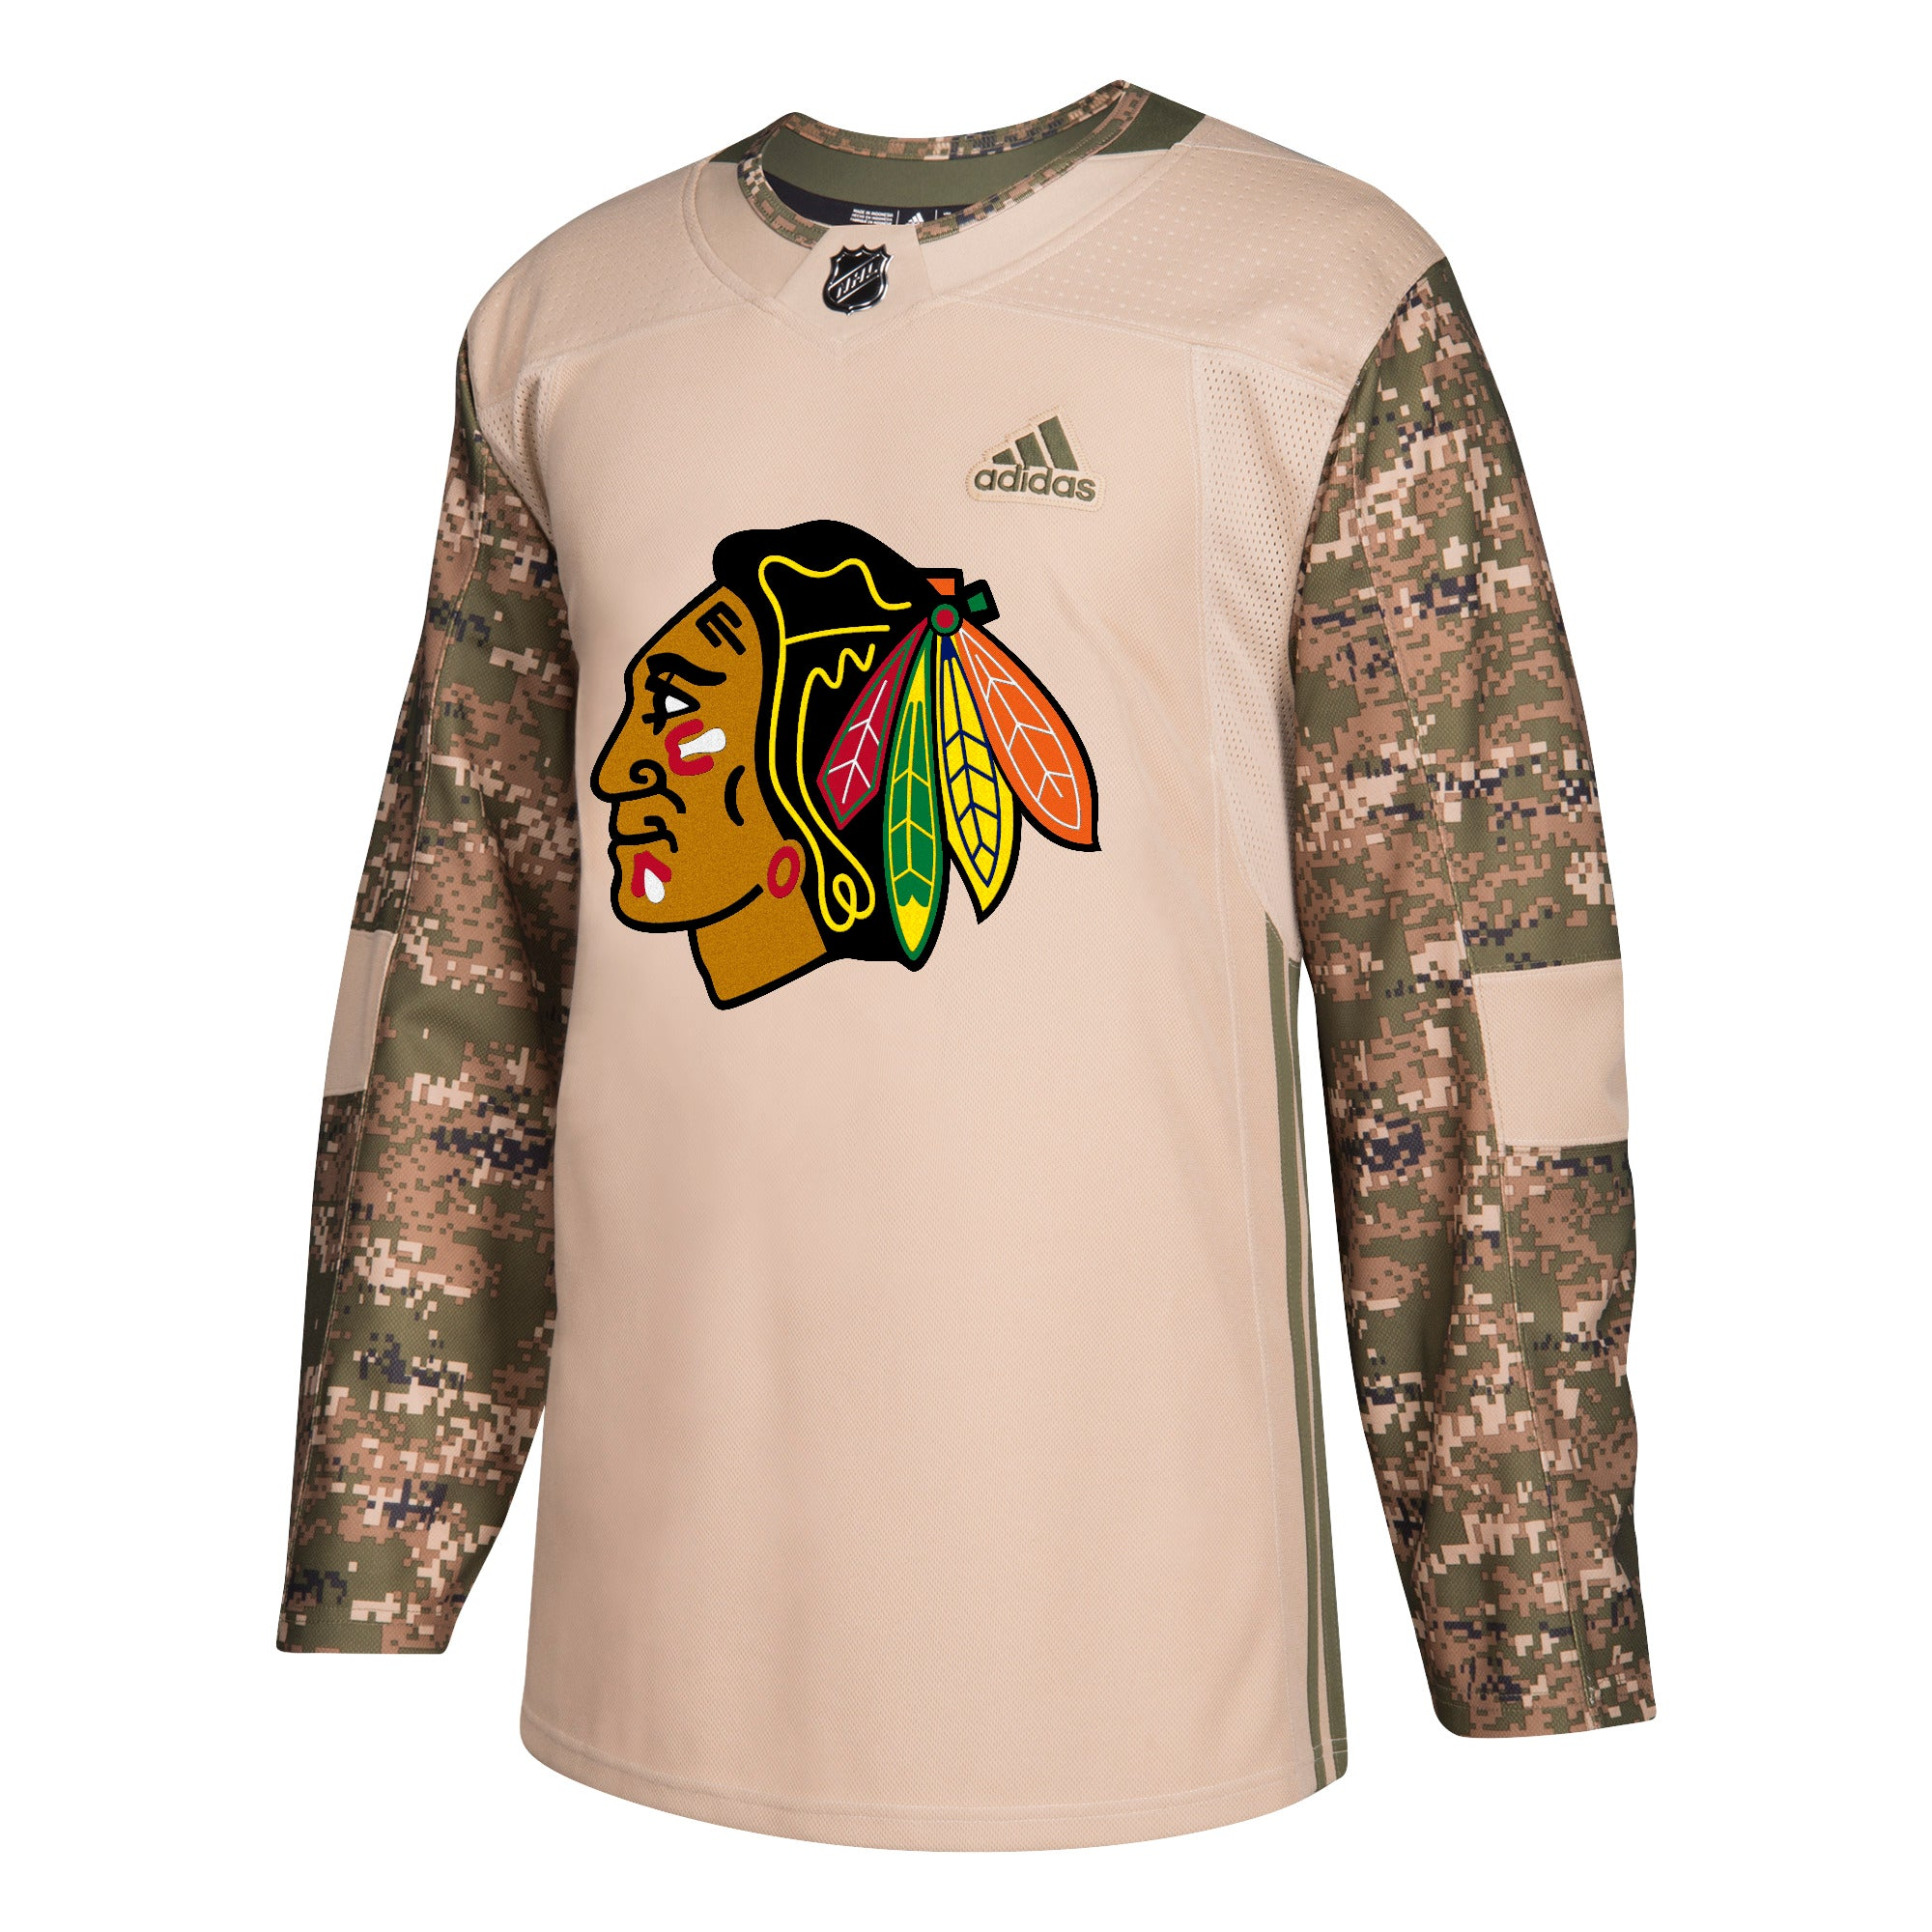 Chicago Military Blackhawks Chicago Jersey Military Jersey Chicago Blackhawks aeebaeffbdbda|Criminal Minds Fanatic's Favorite Things